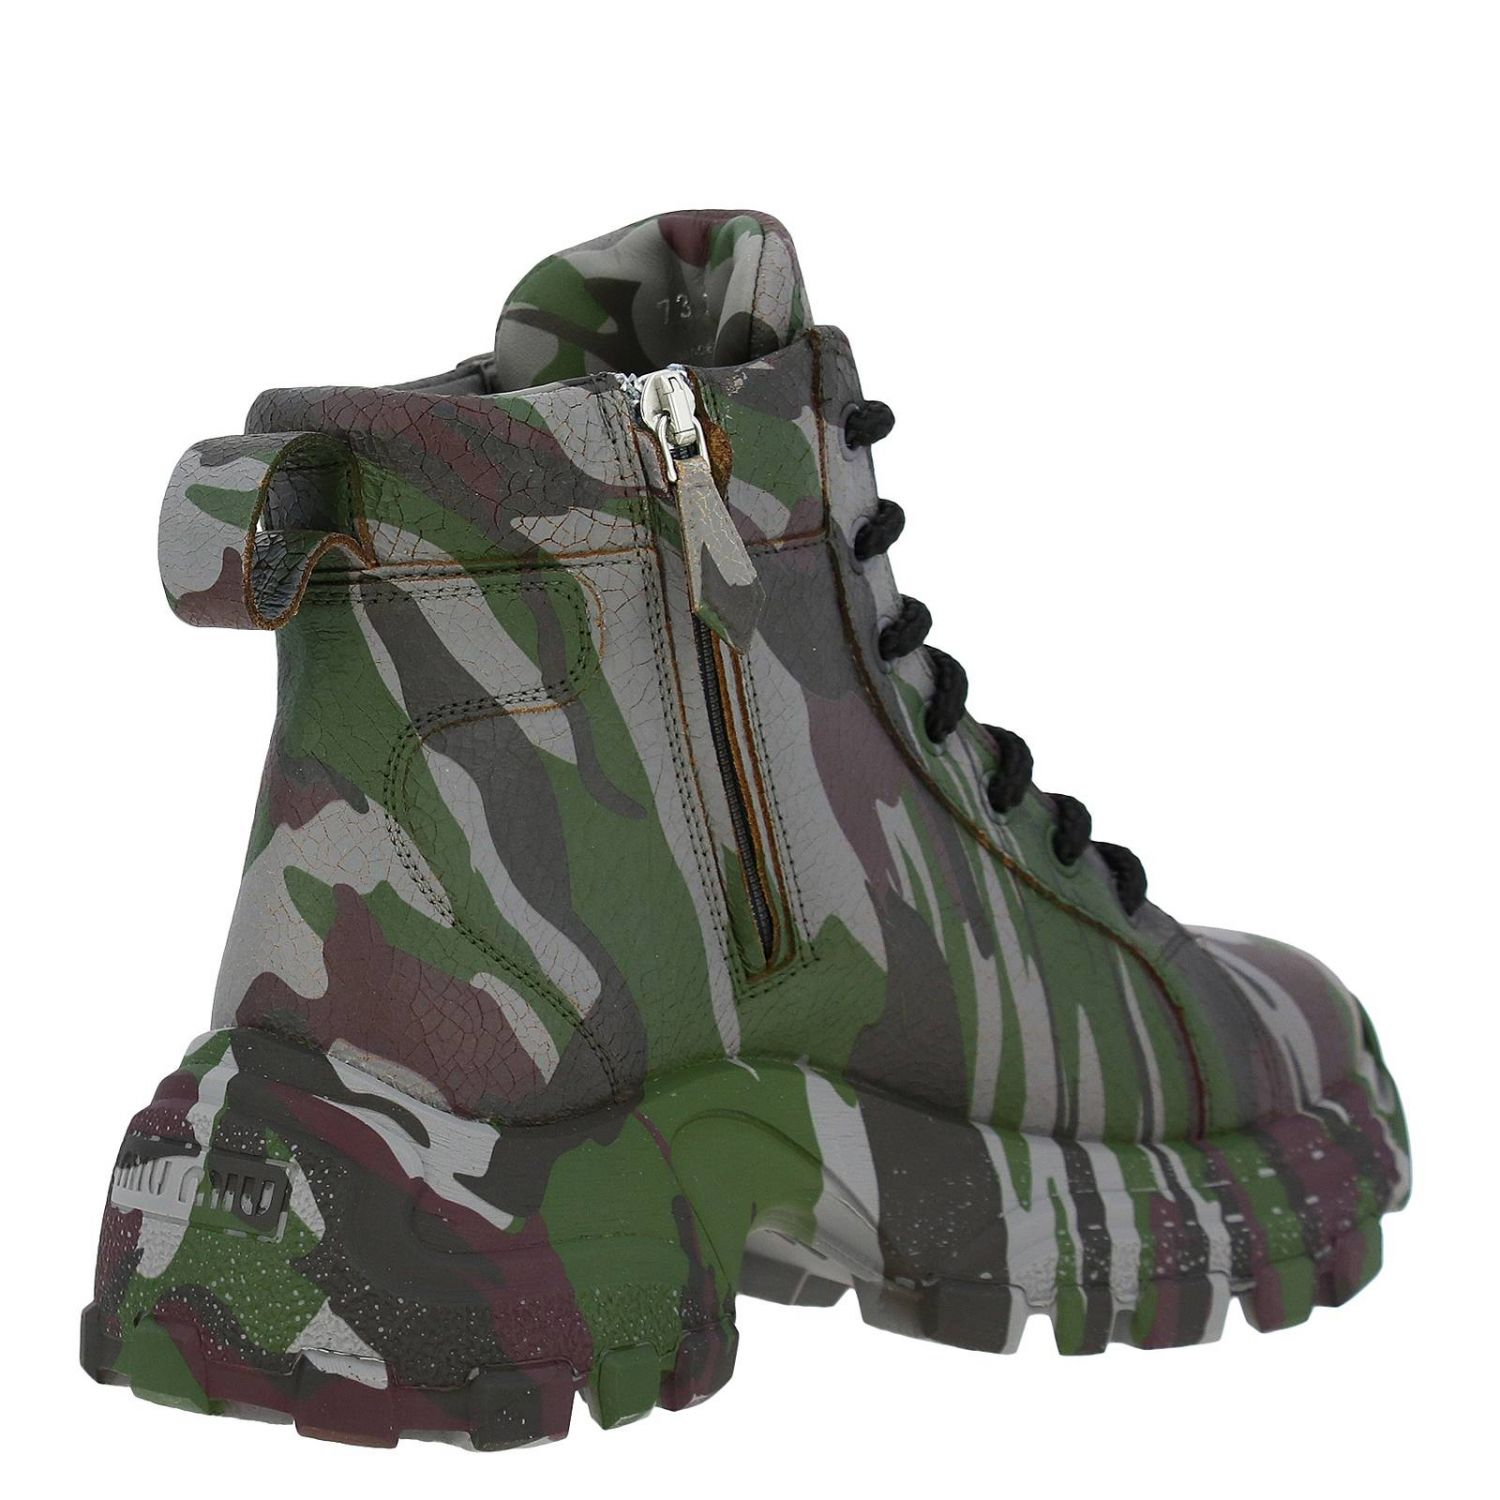 Miu Miu sneakers in camouflage printed leather with combat sole military 5